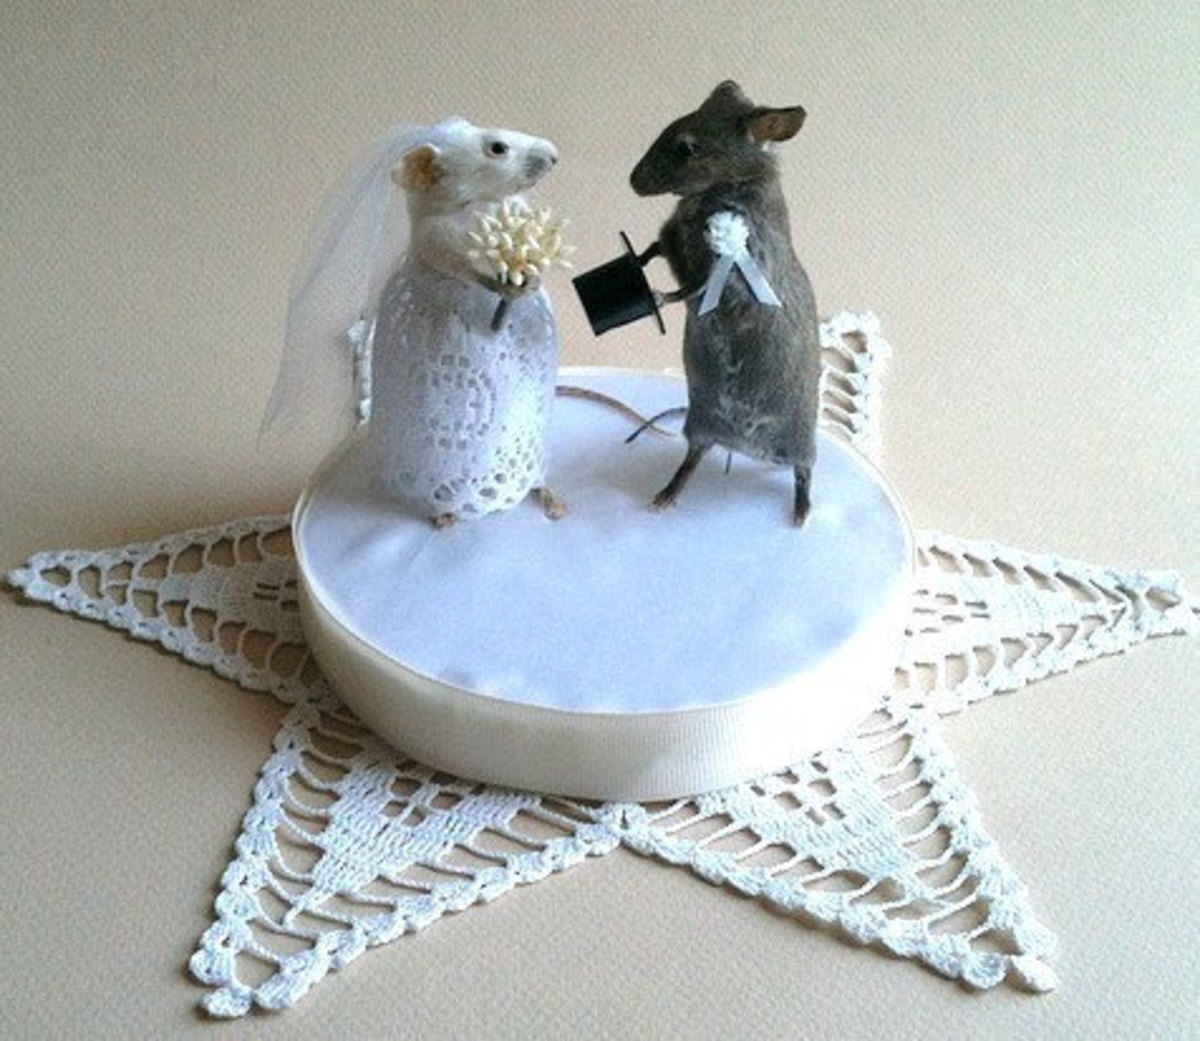 A gentlemouse and a ladymouse prepare to share their eternal vows.